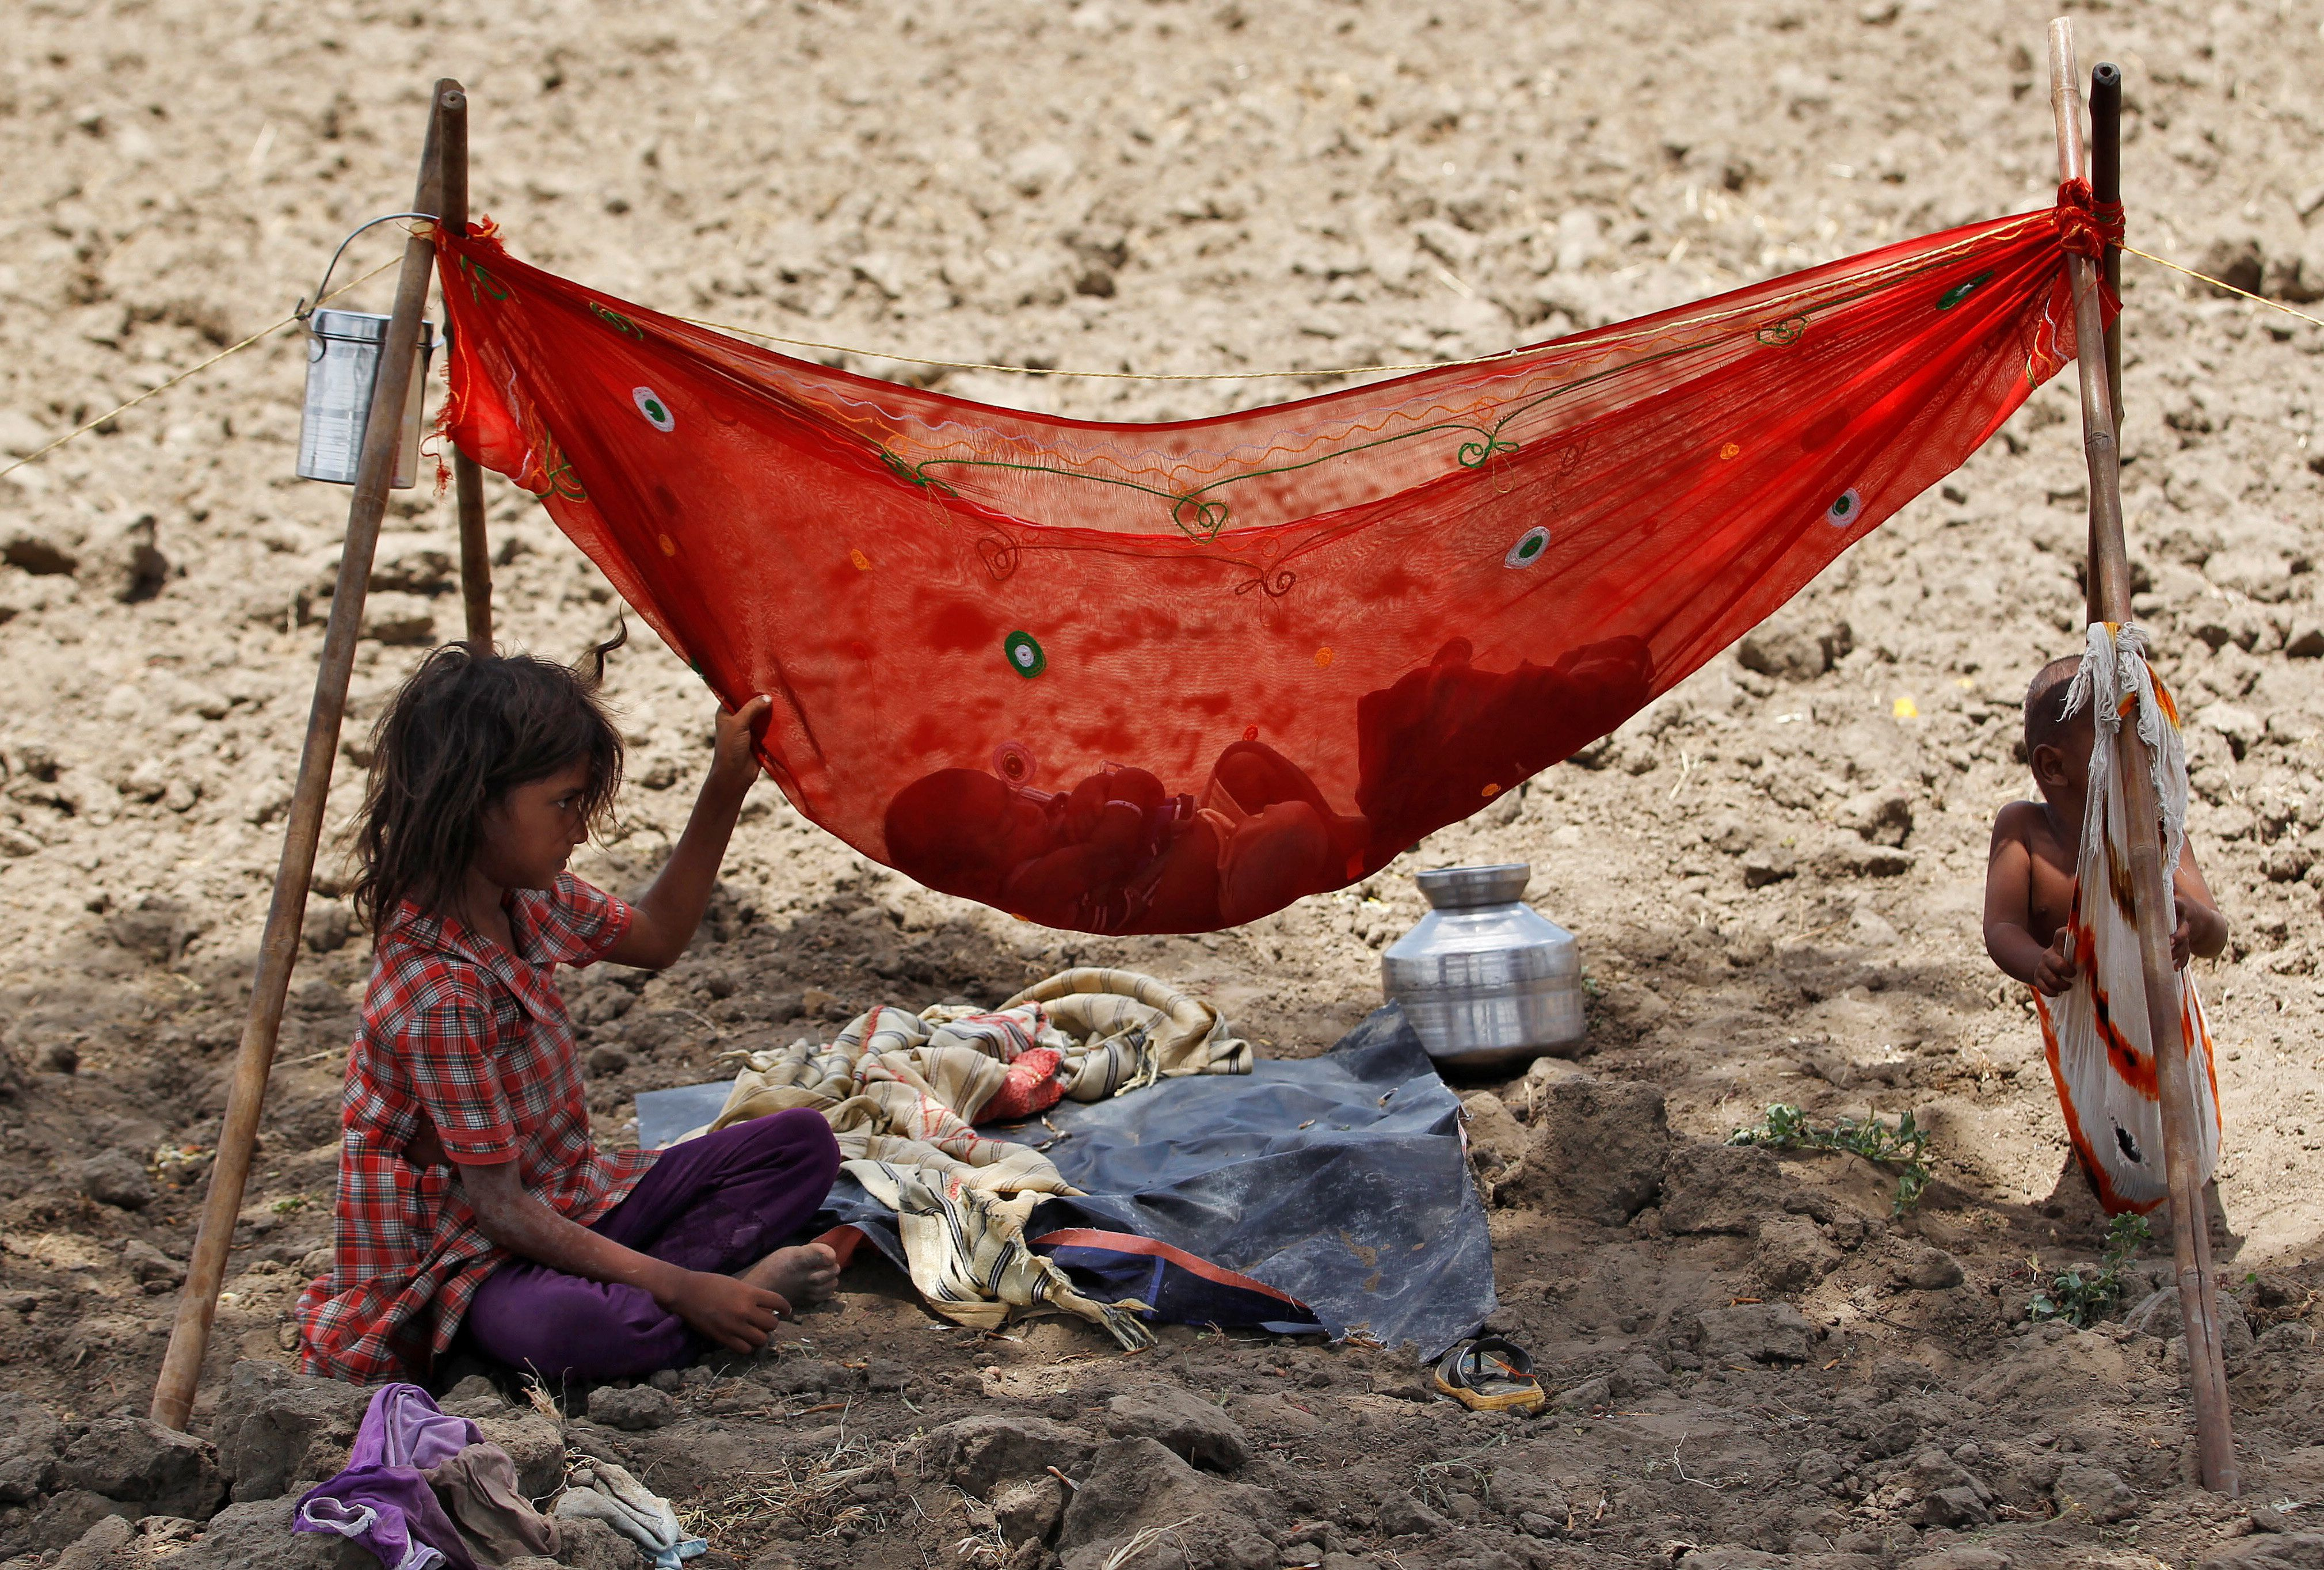 A girl sits next to her sibling who is resting in a hammock under the shade of a tree in a field on the outskirts of Ahmedabad, India May 31, 2016. REUTERS/Amit Dave